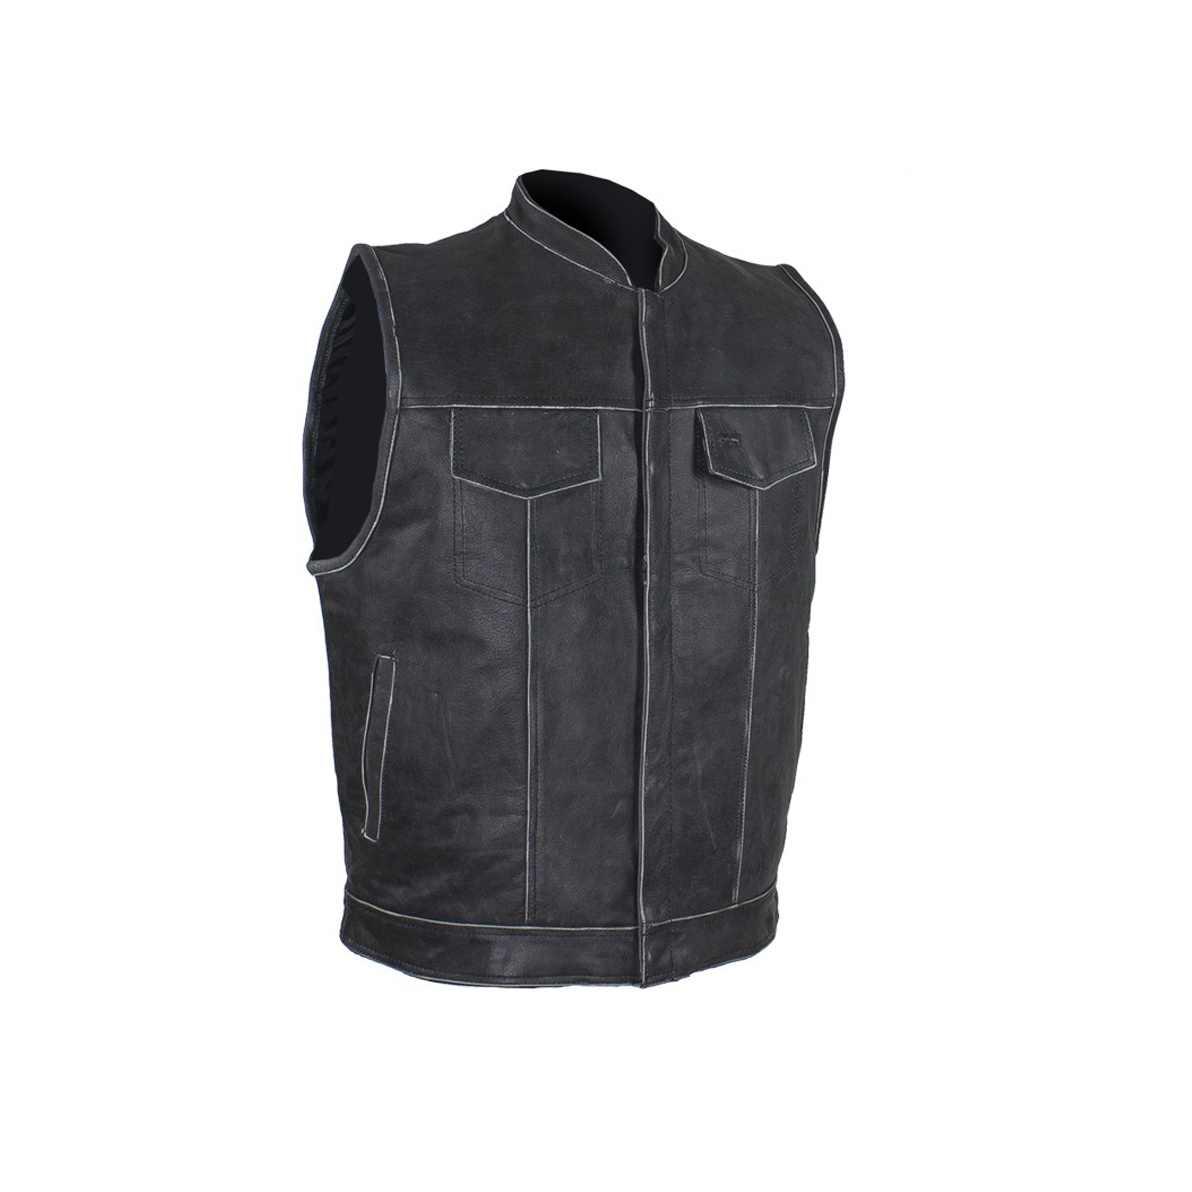 Dream Apparel Mens Leather Vest With Concealed Carry Pocket /& Black Liner MV320-11-50